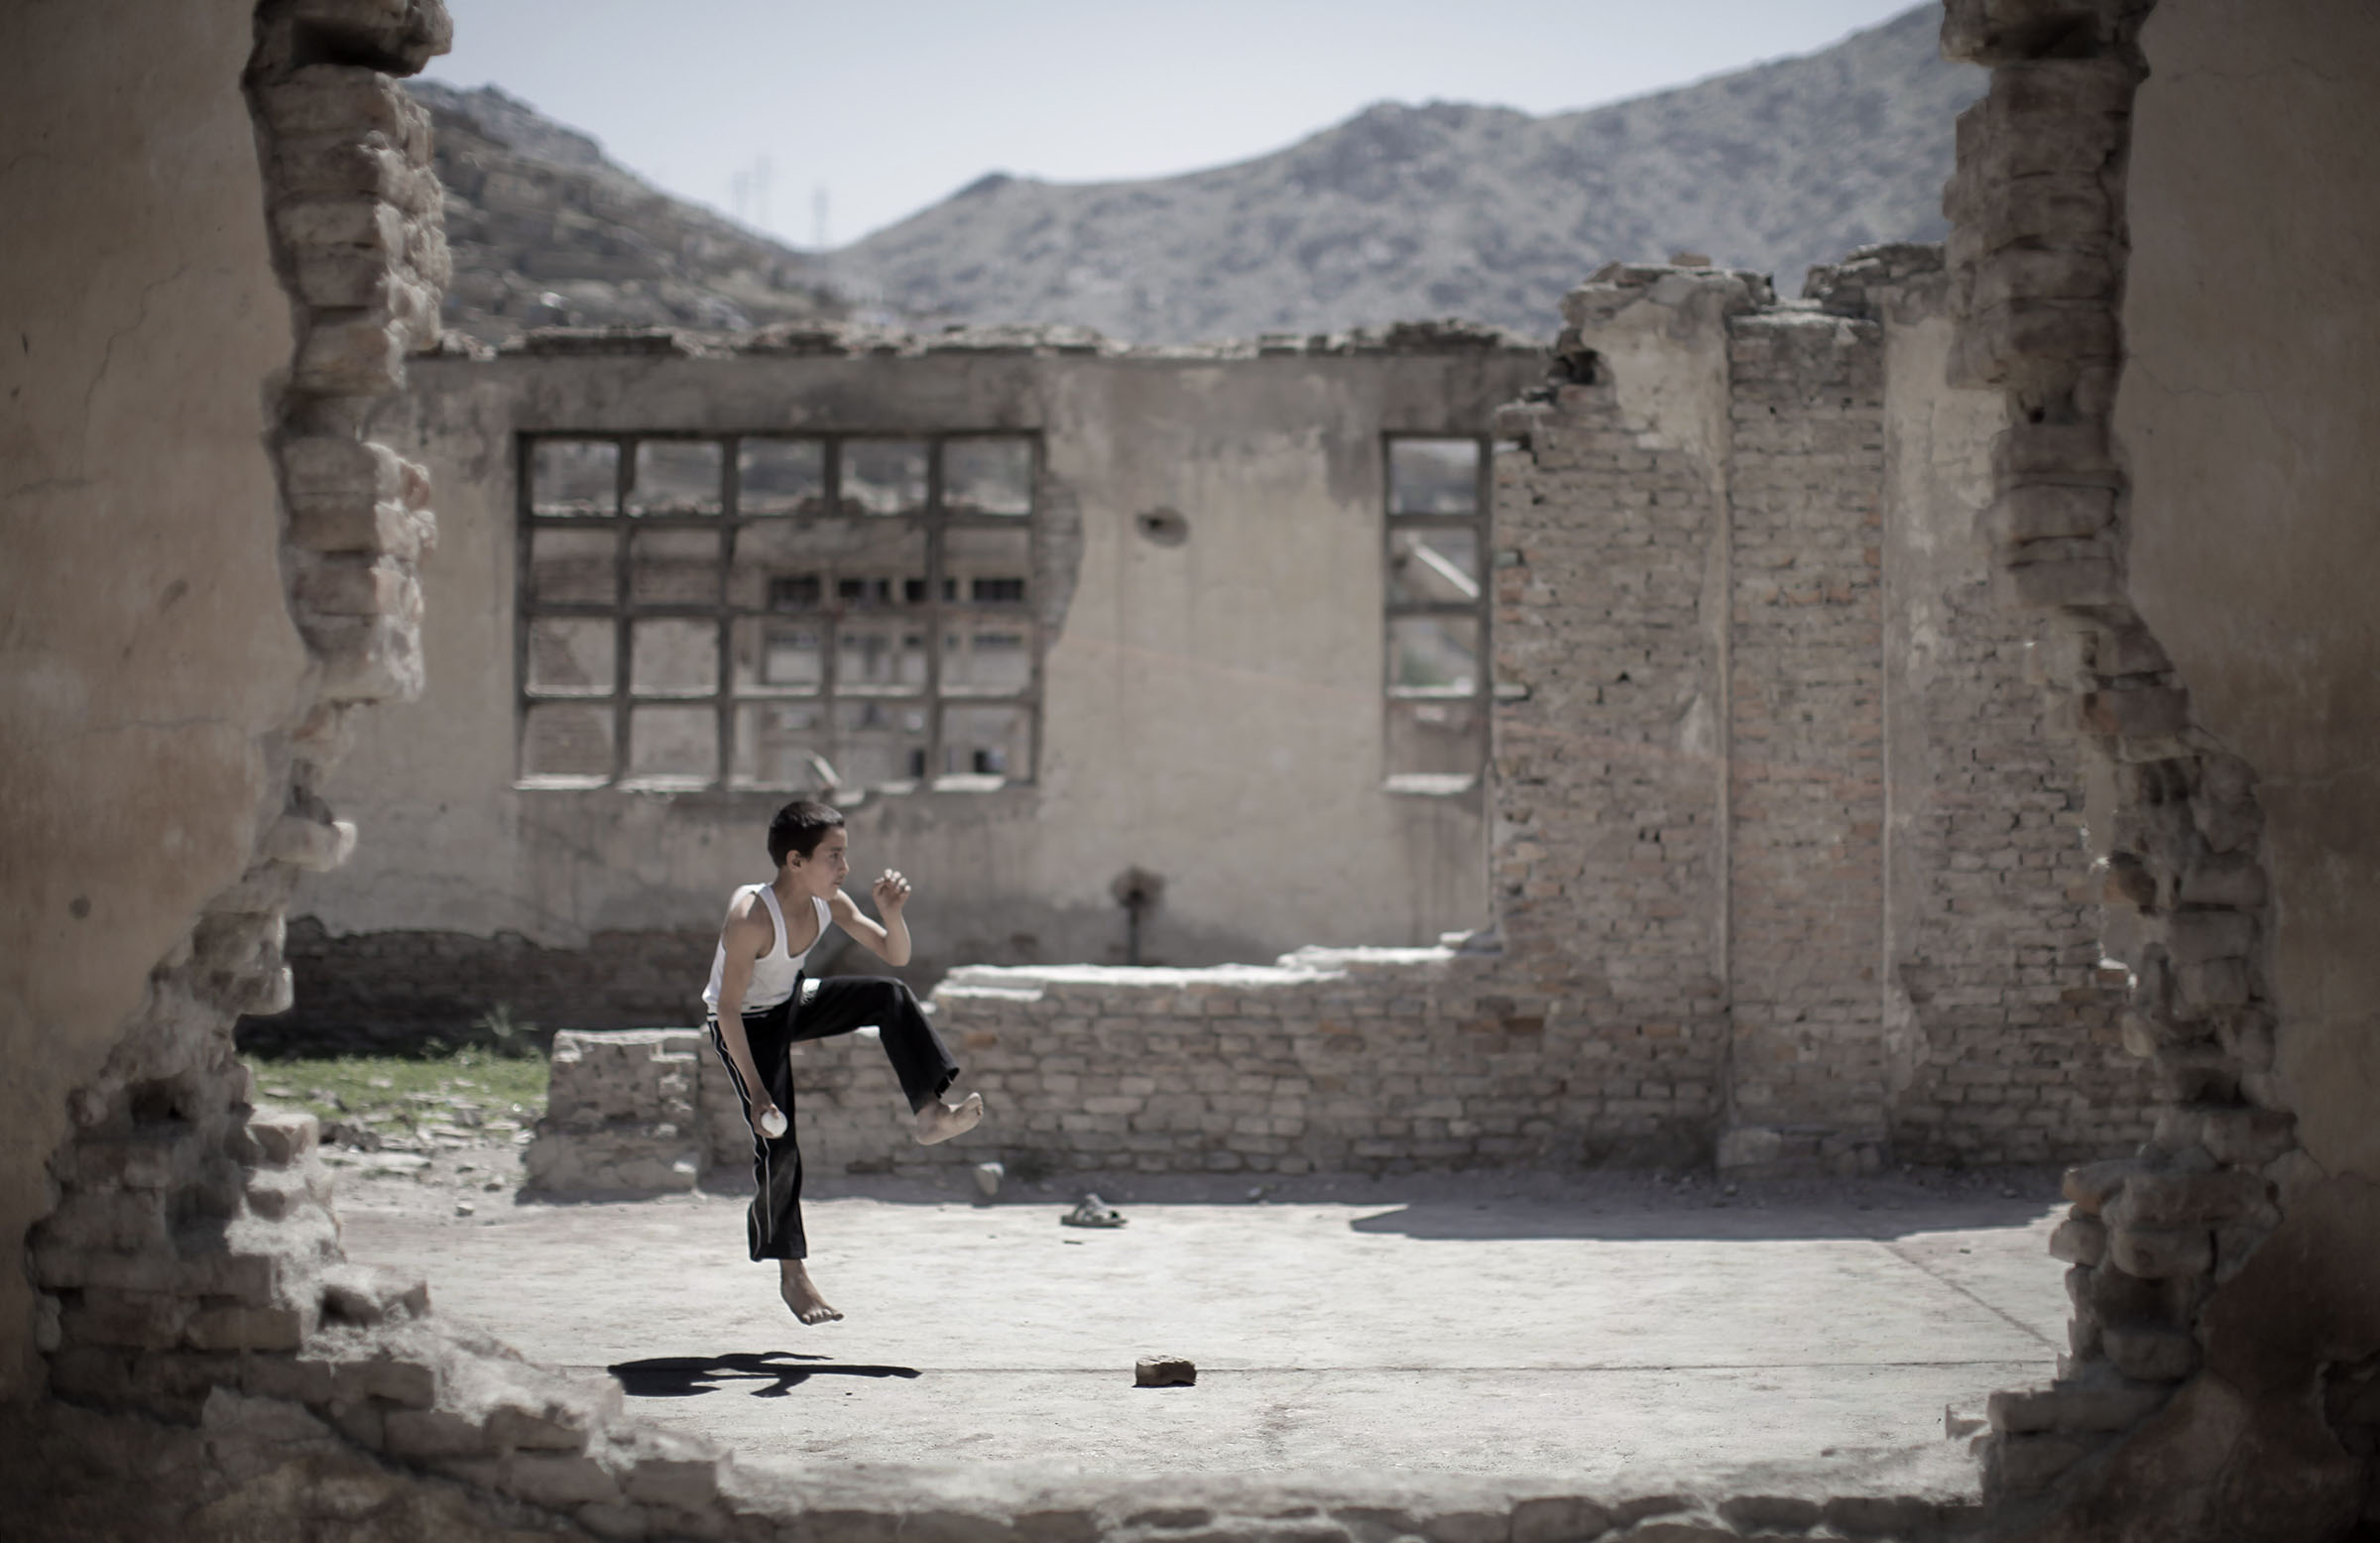 A child plays in the ruins of a compound on the outskirts of Kabul // Getty